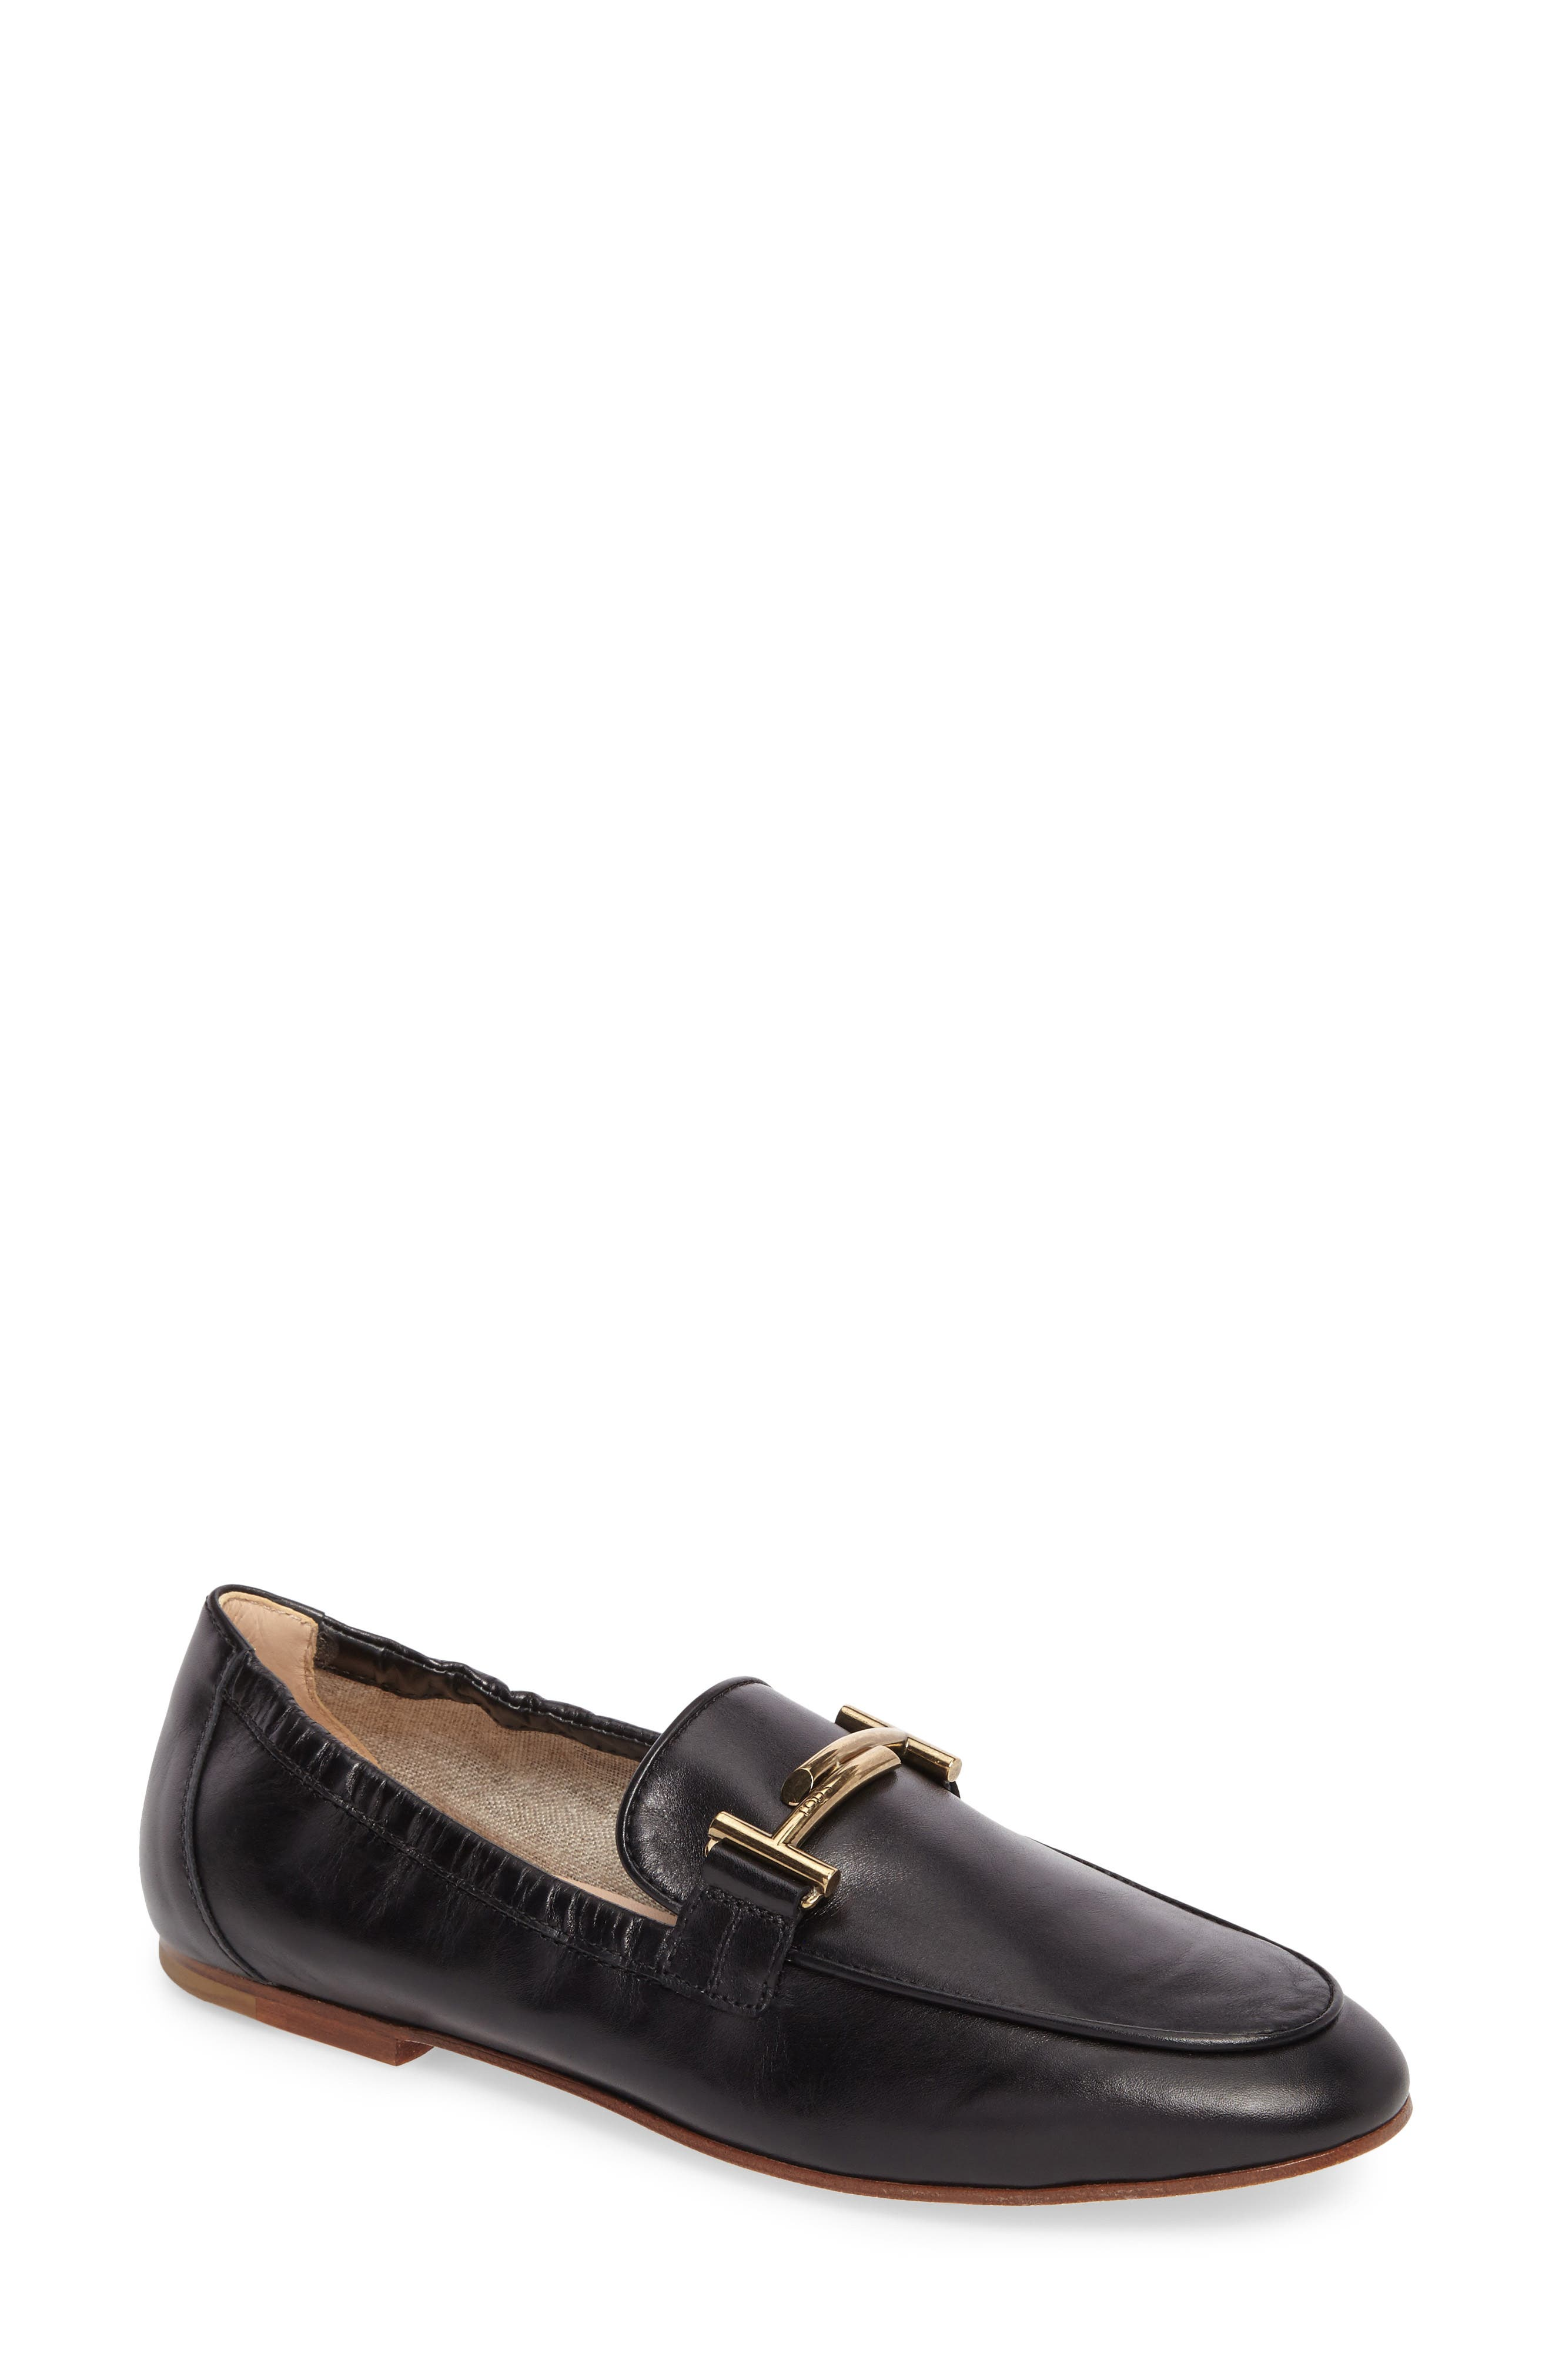 Double T Scrunch Loafer,                             Main thumbnail 1, color,                             Black